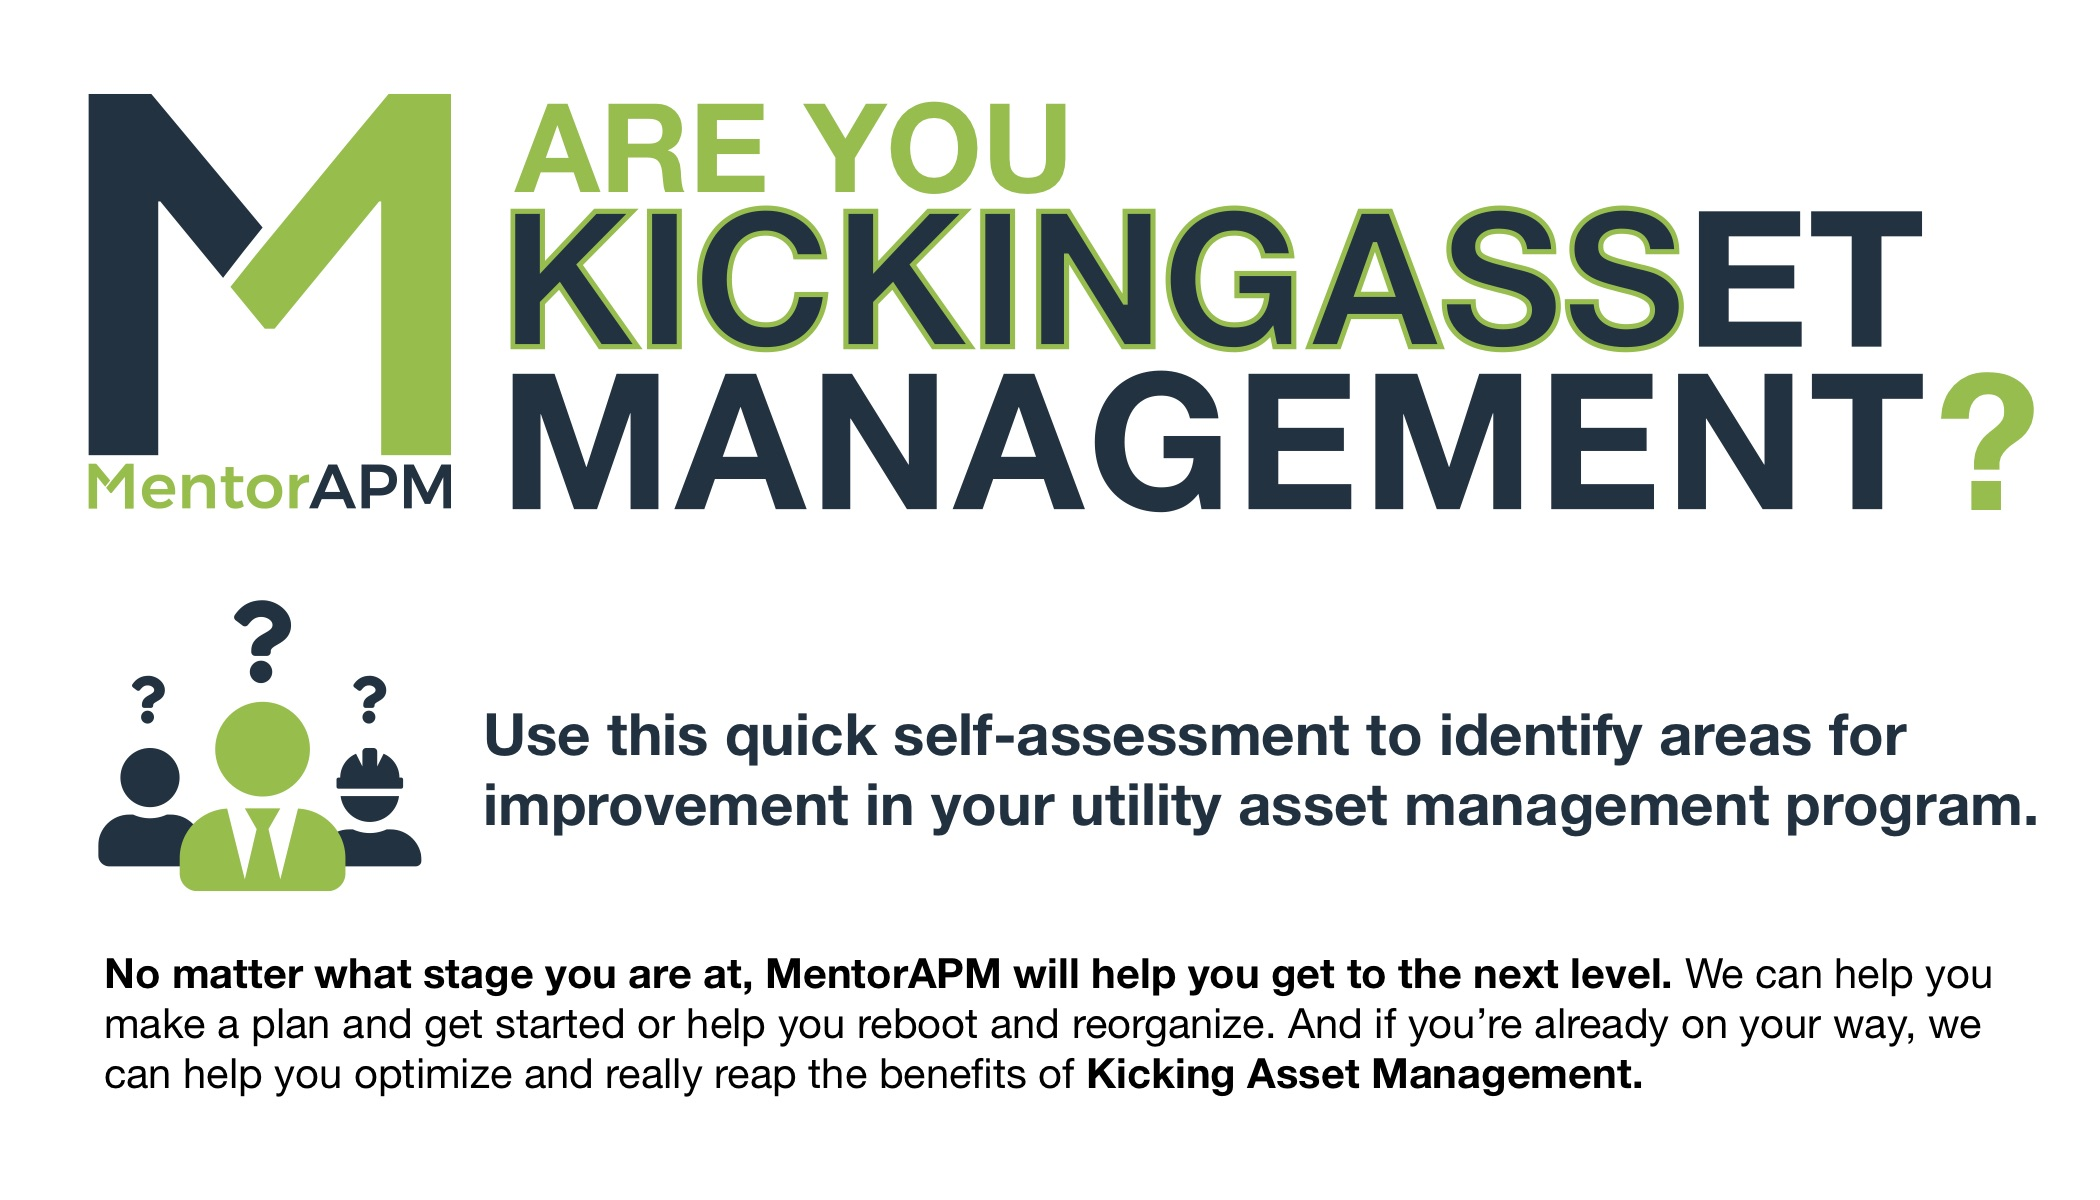 Are You Kicking Asset Management? Quick self-assessment tool